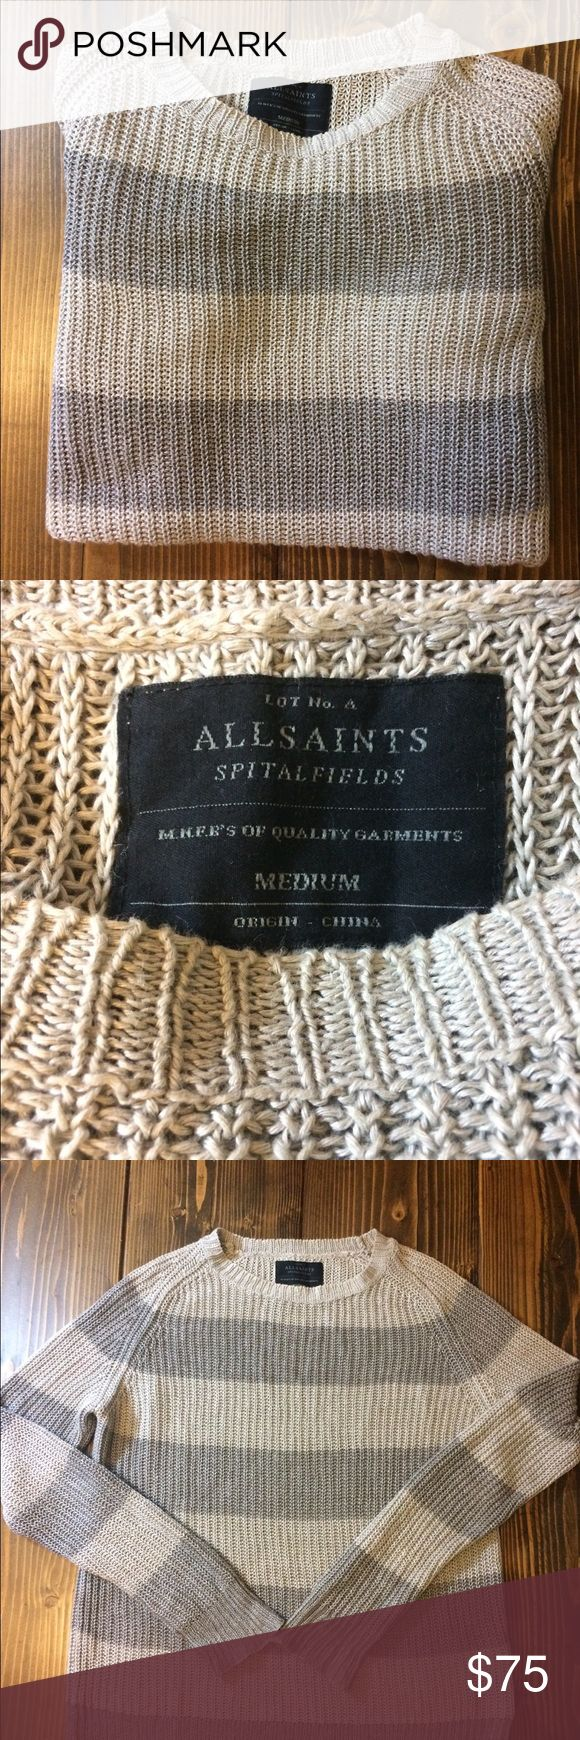 ALL SAINTS SPITALFIELDS SWEATER ALL SAINTS GREY Striped Sweater. In Great preloved condition. All Saints Sweaters Crewneck